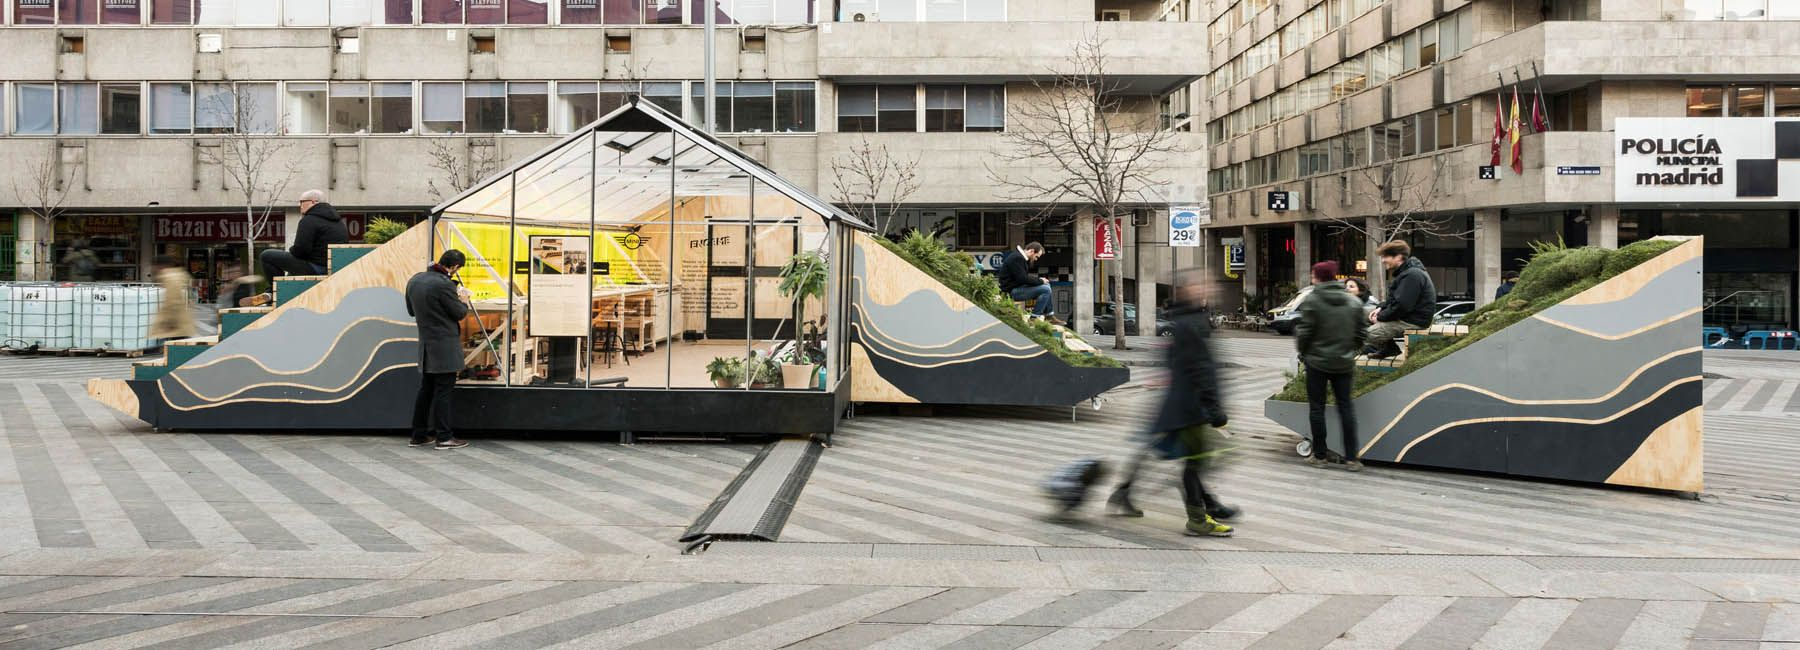 MINI hub installation in madrid rethinks the future of